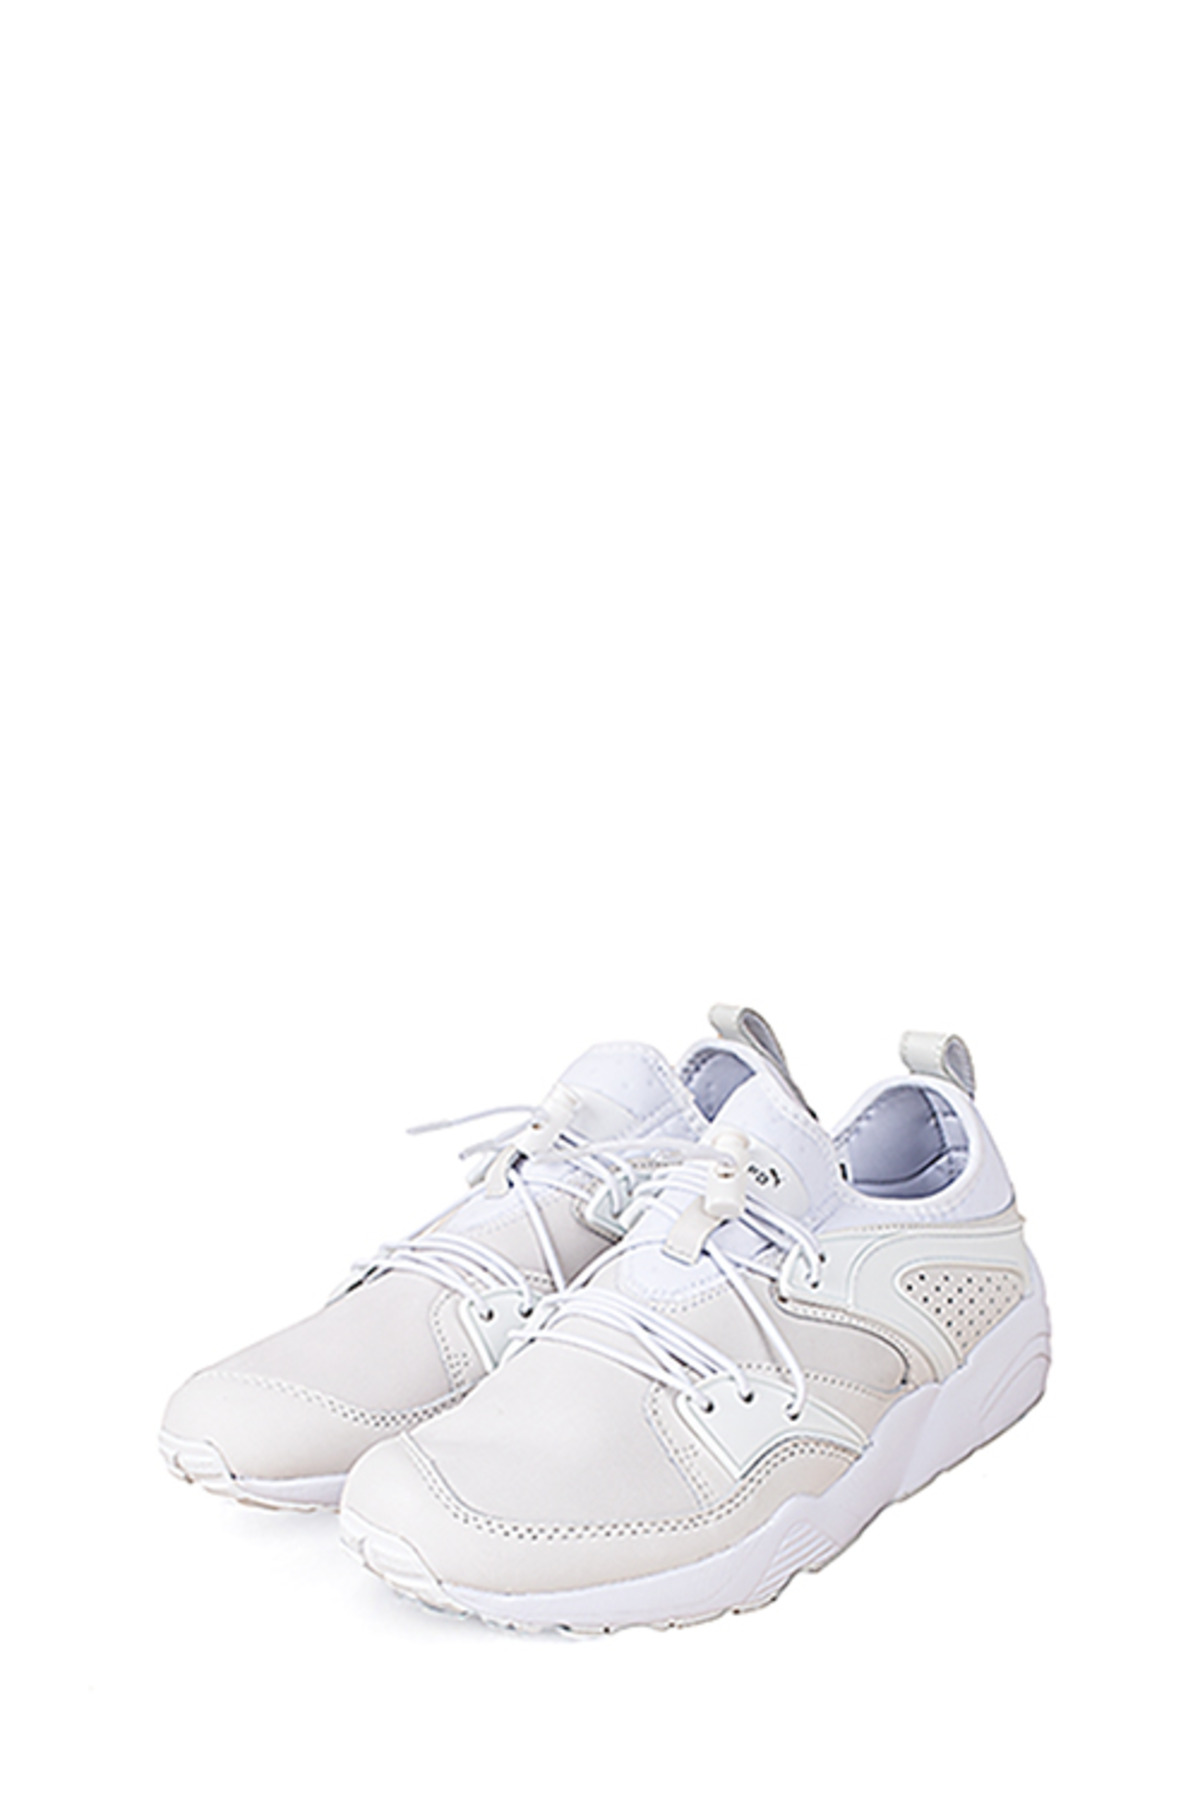 Puma x STAMPD : Blaze Of Glory (White)